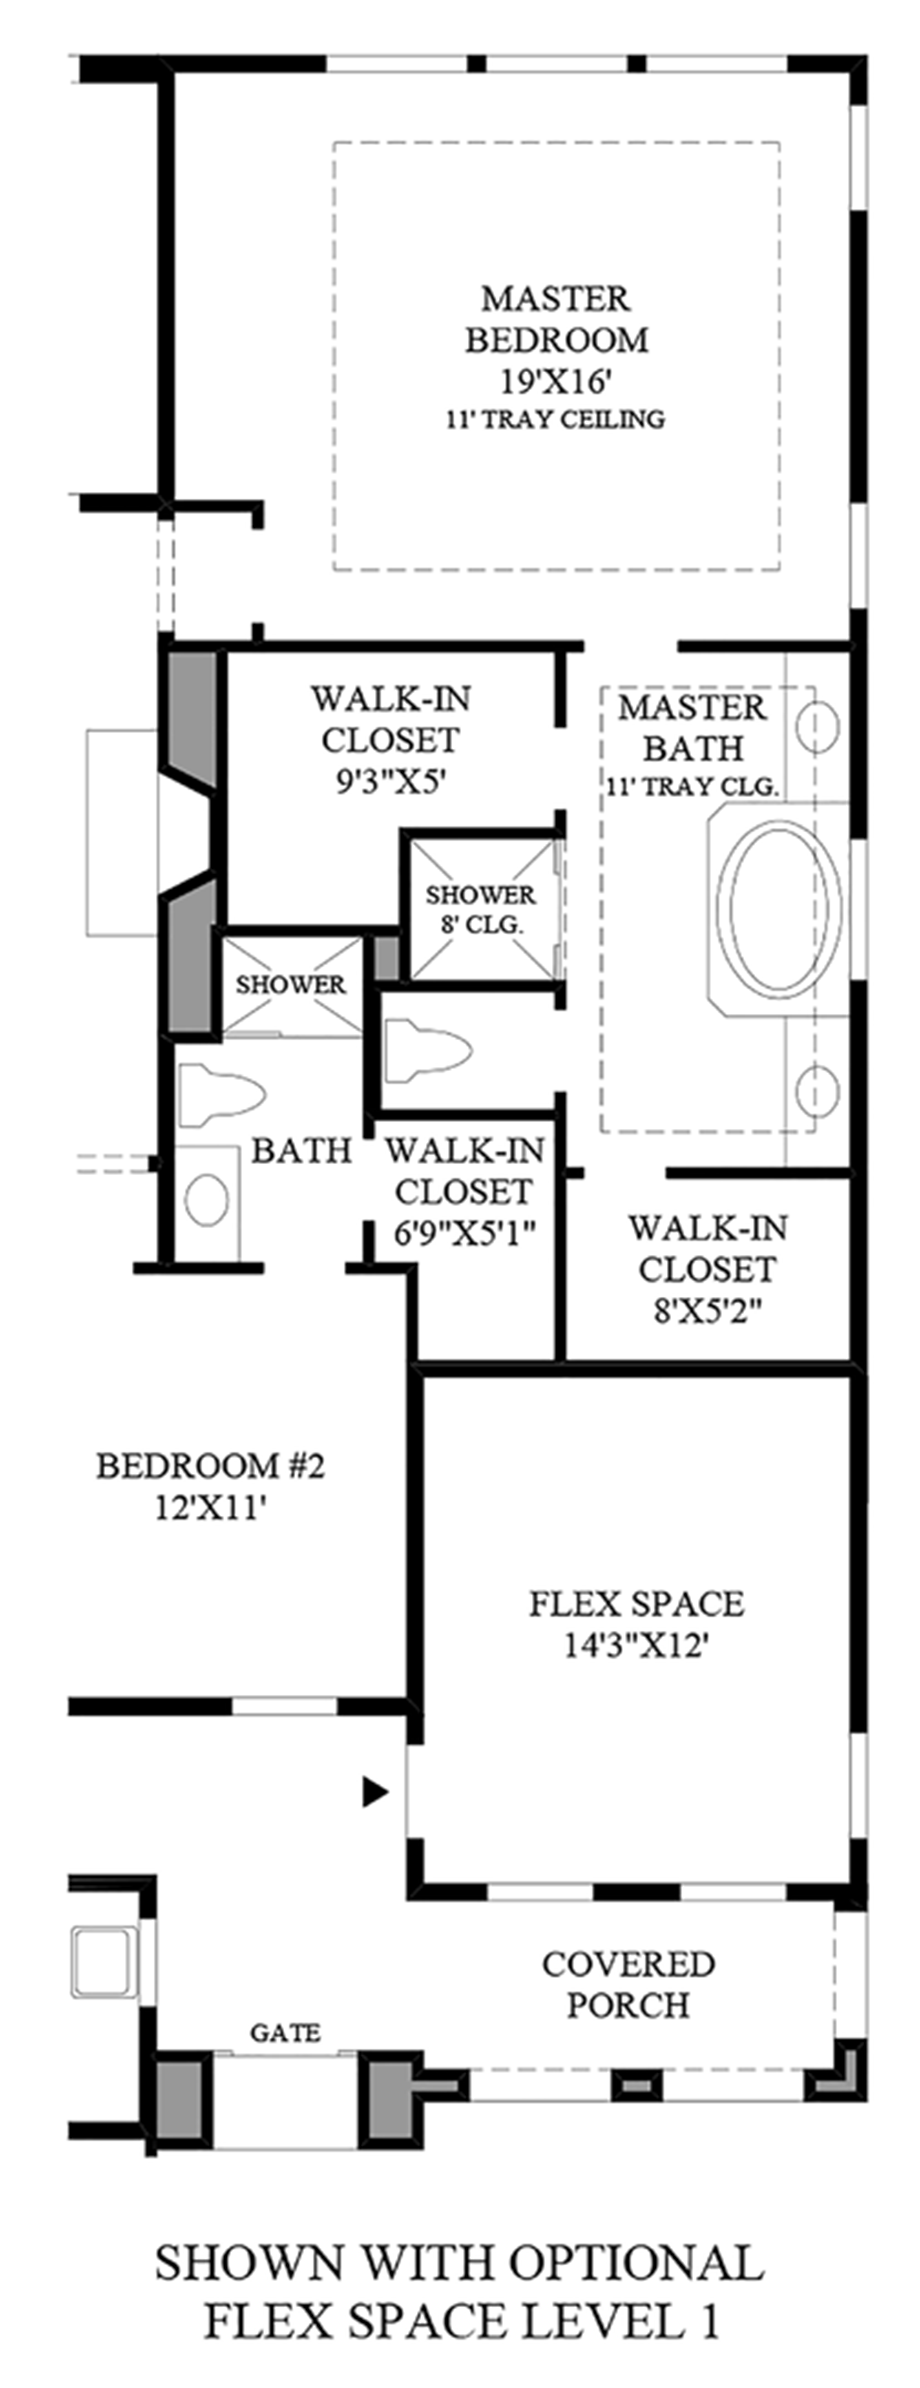 Optional Flex Space on Level 1 Floor Plan